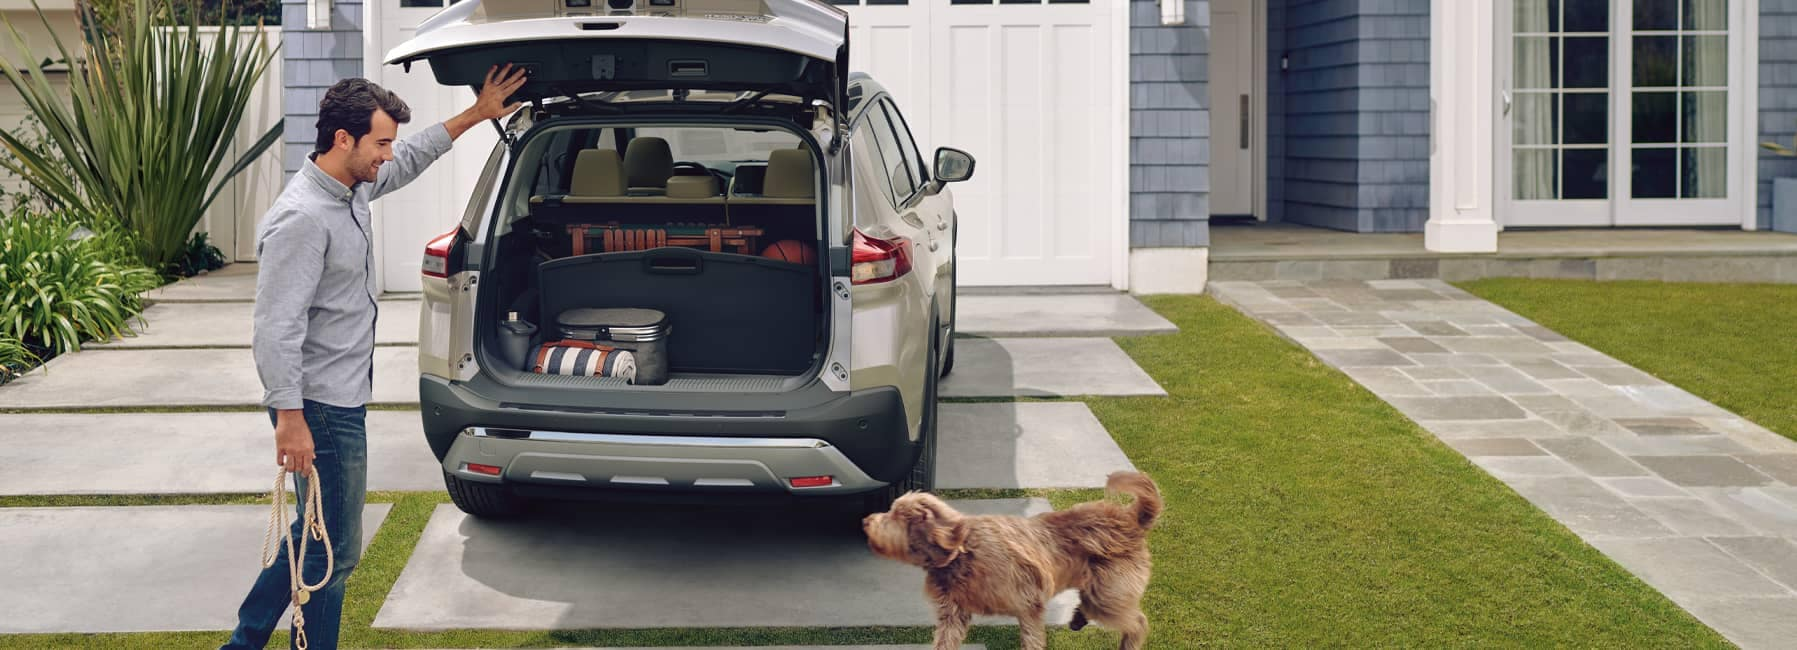 A man and his dog loading up the back of a 2021 Nissan Rogue parked in residential driveway